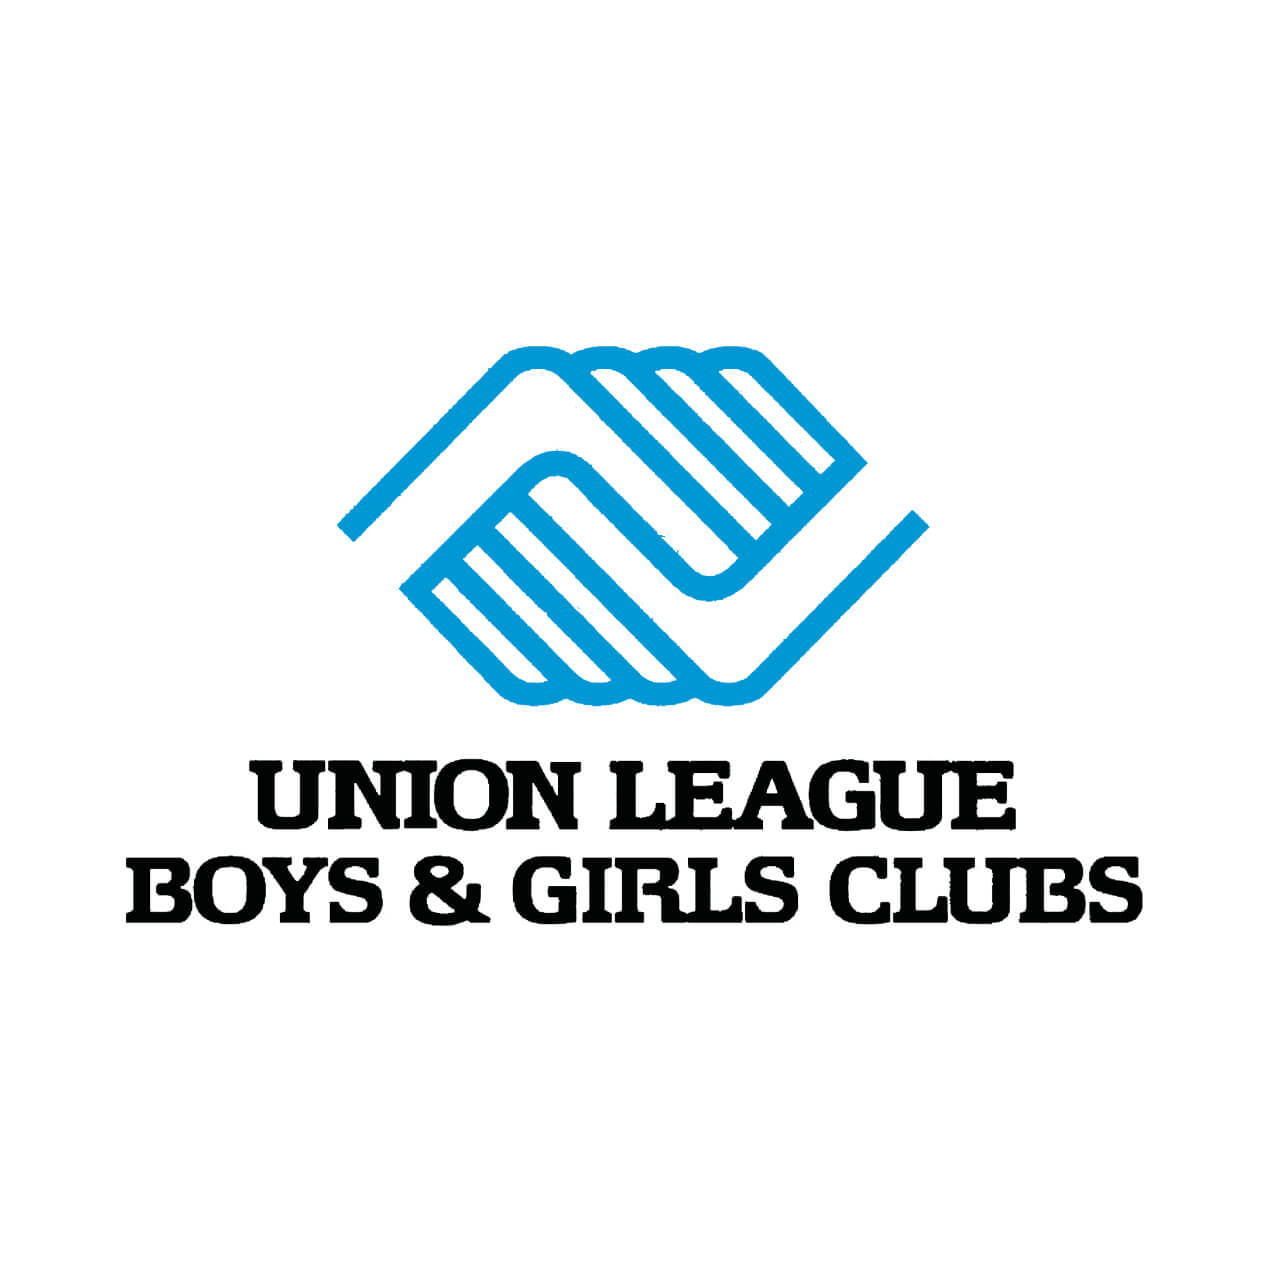 Supporting Union League Boys & Girls Clubs